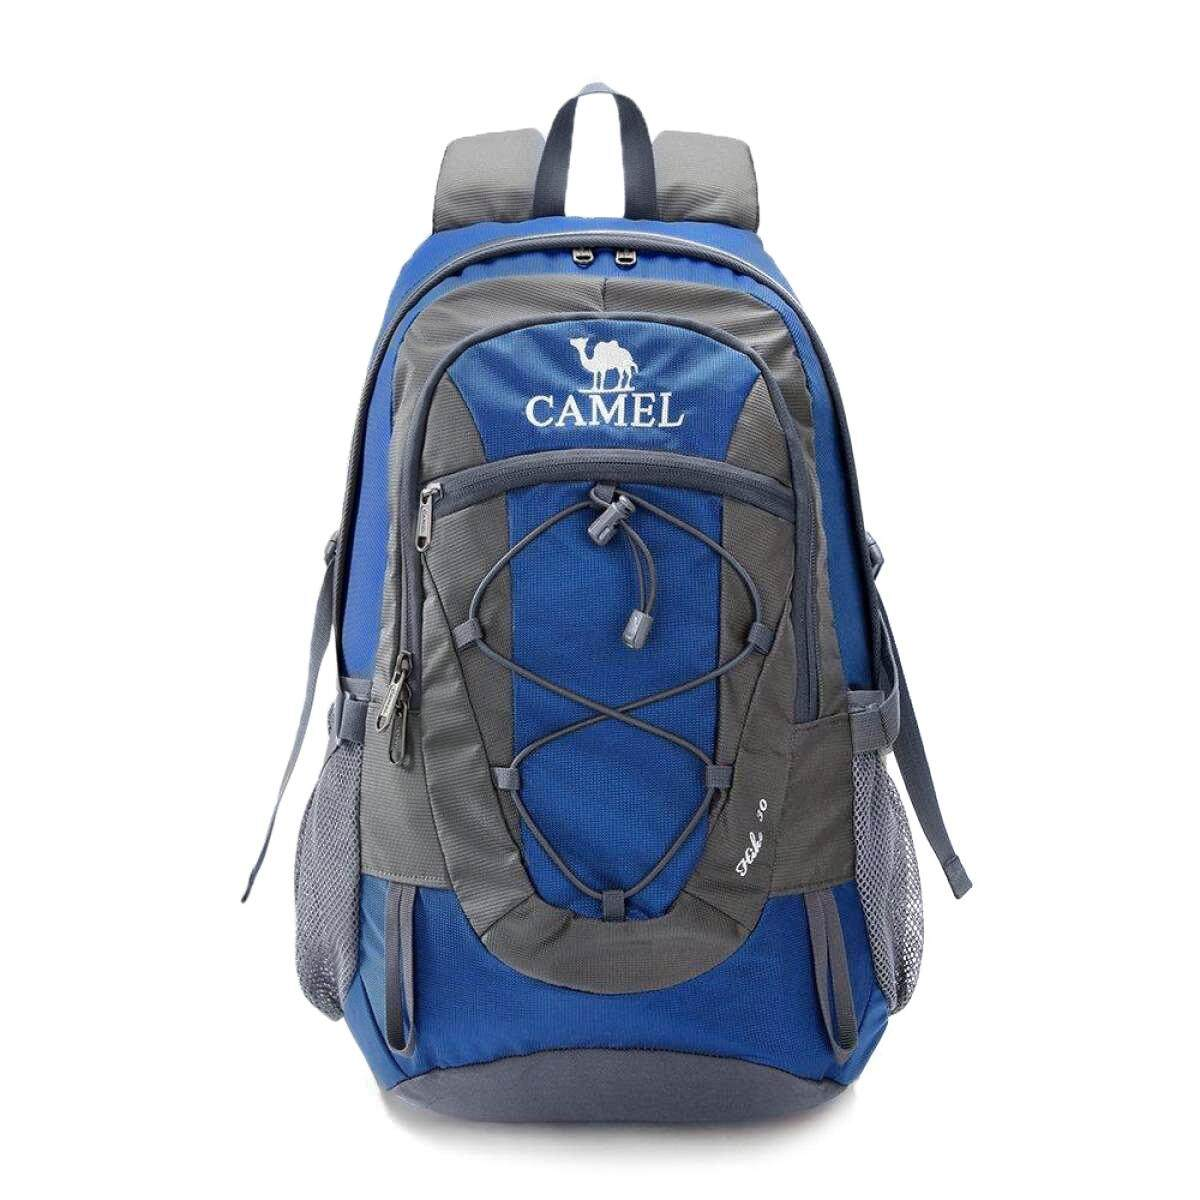 Camel 30l Lightweight Travel Backpack Outdoor Mountaineering Hiking Daypack With Durable & Waterproof By Camel International